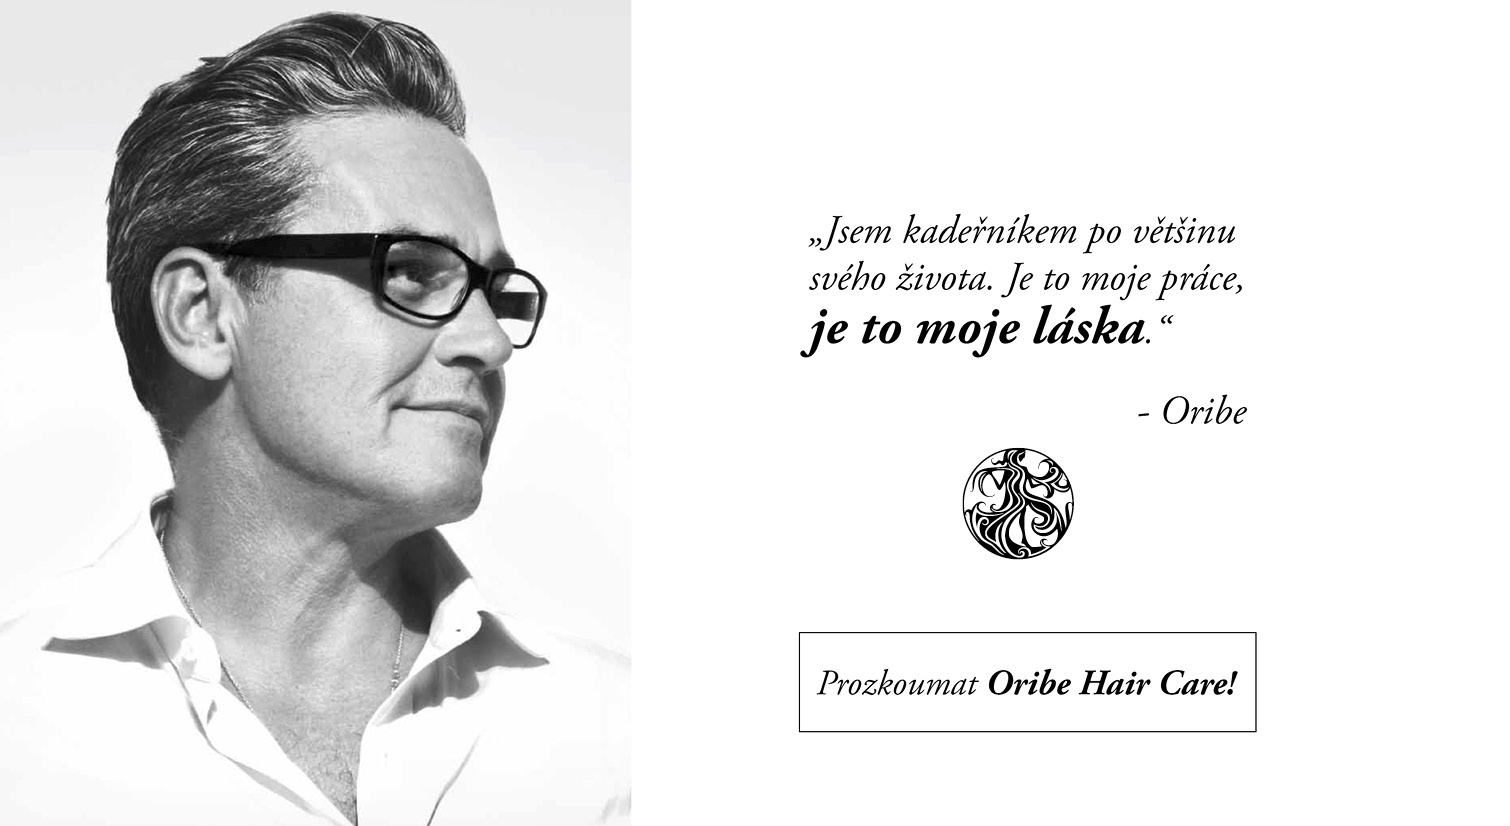 Prozkoumat Oribe Hair Care!